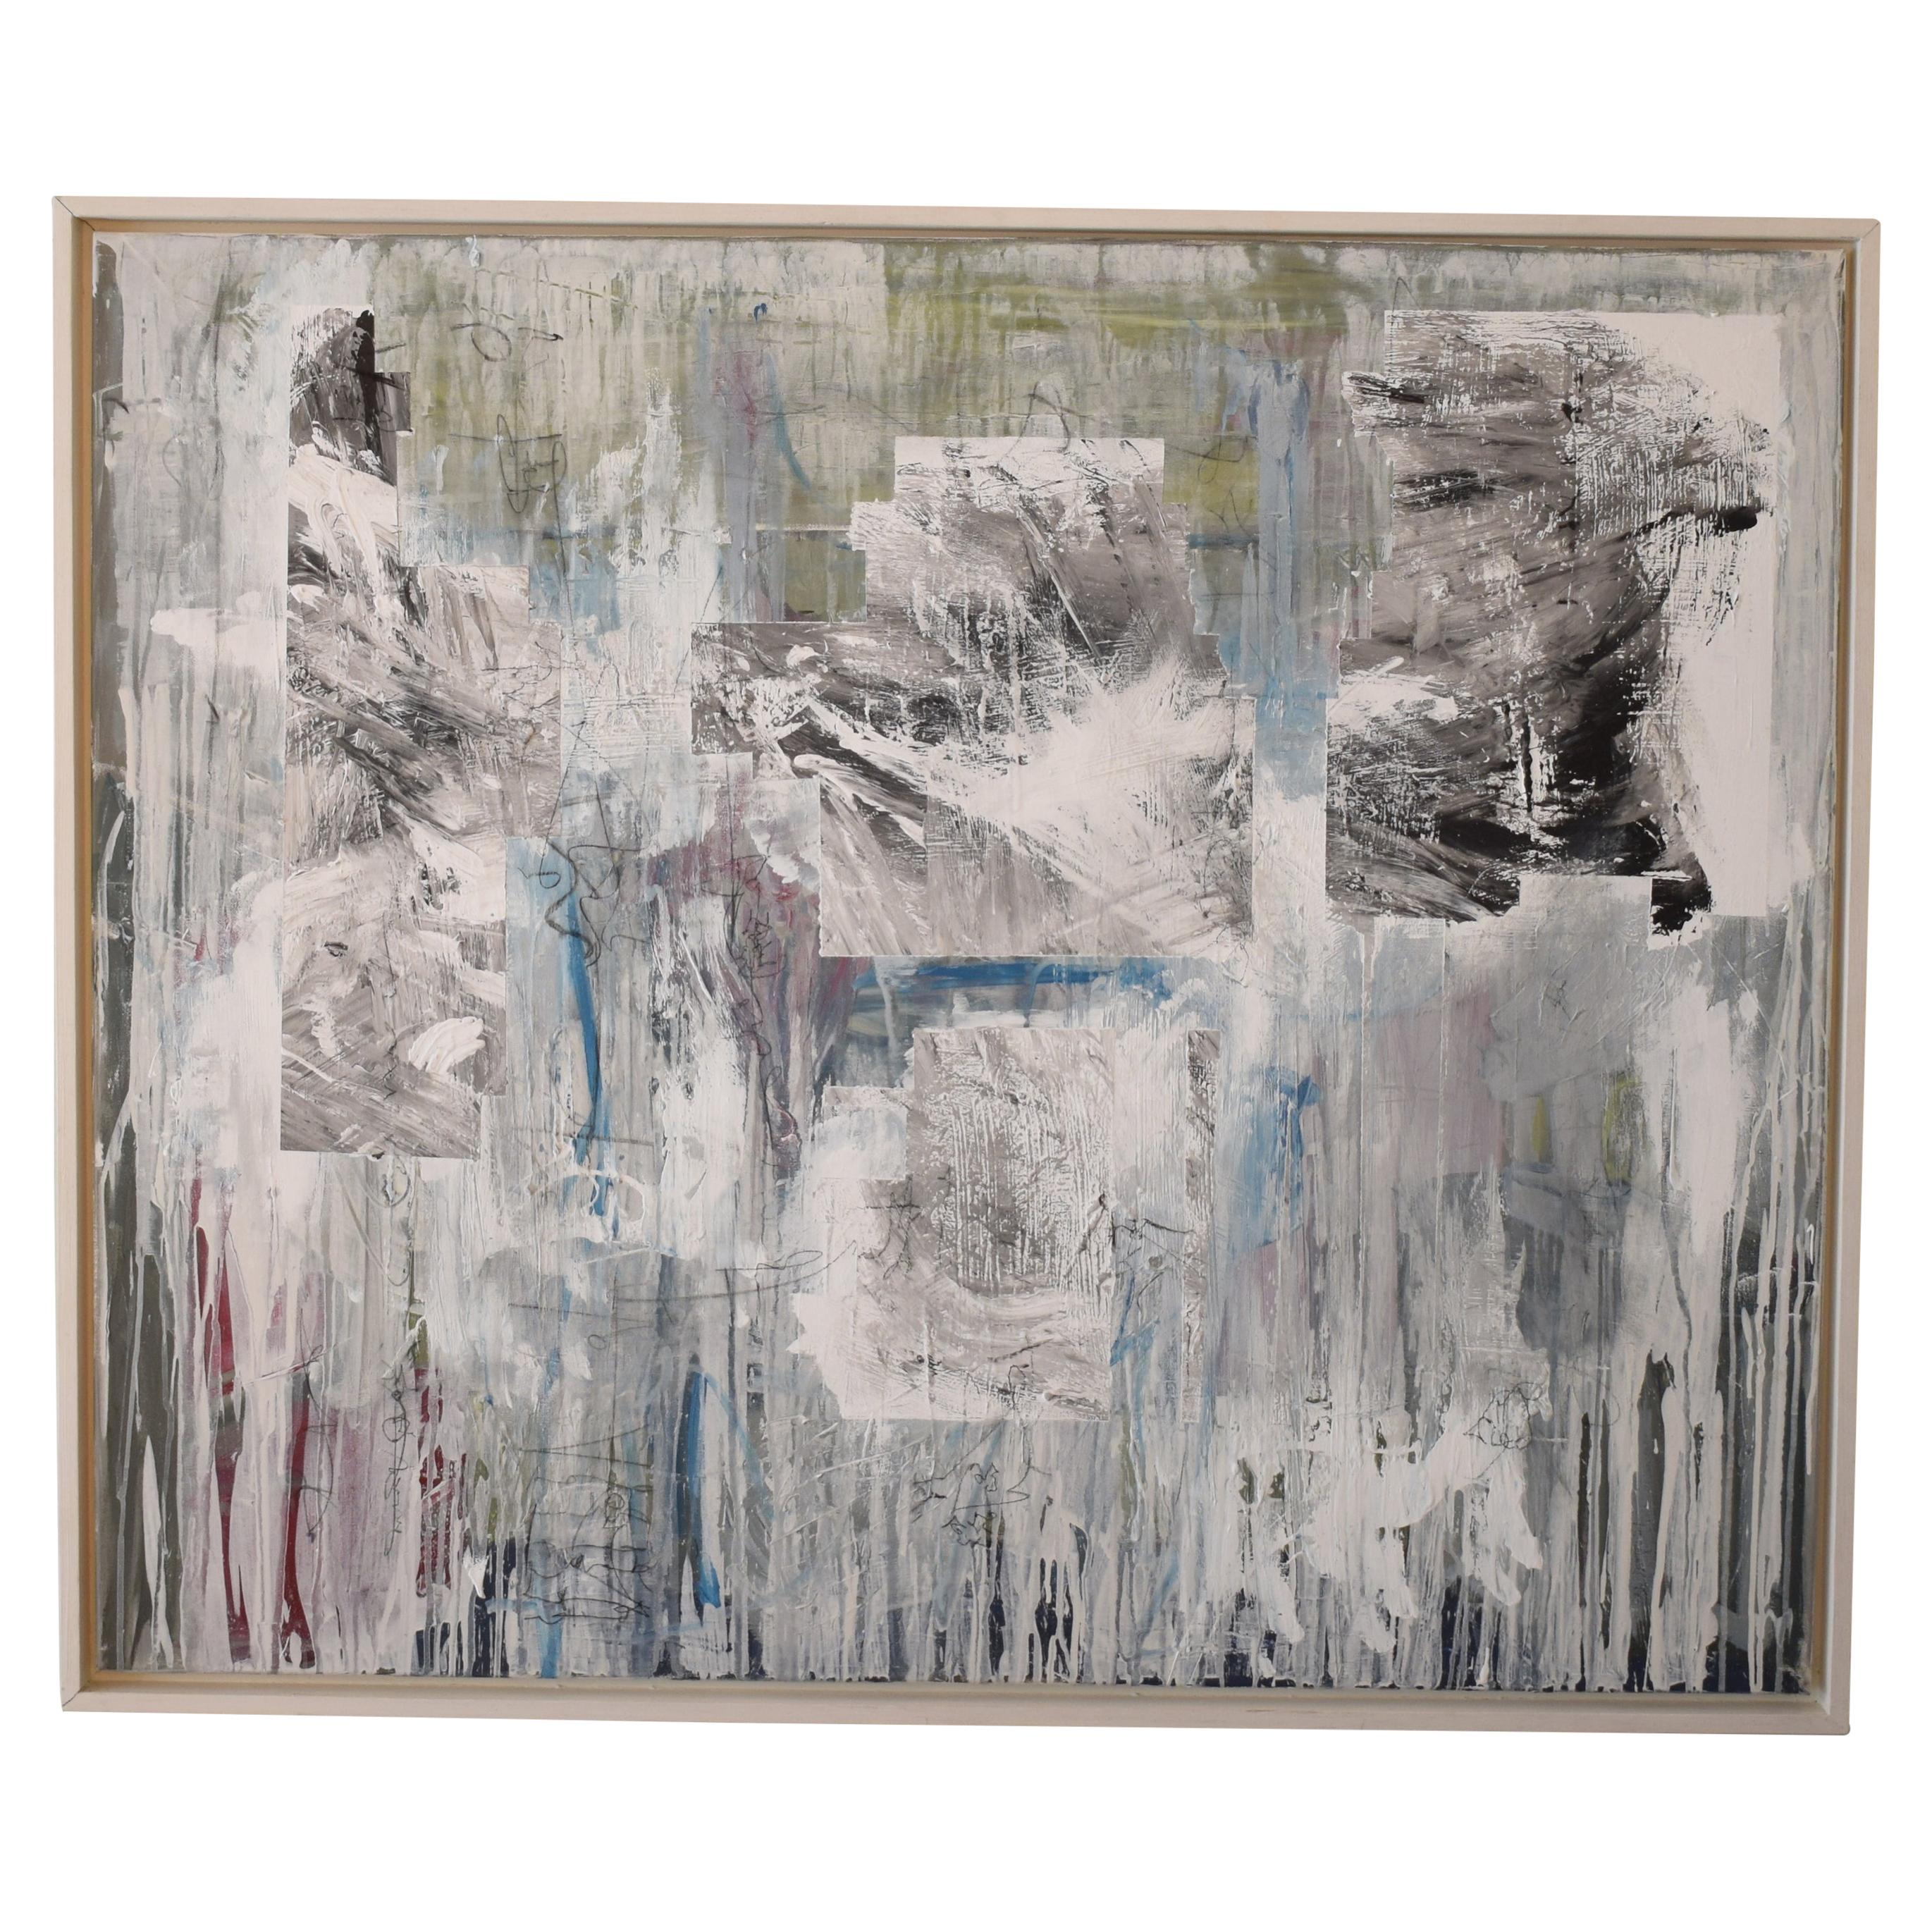 Contemporary German Modern Abstract Grey White Black Acrylic Painting on Canvas